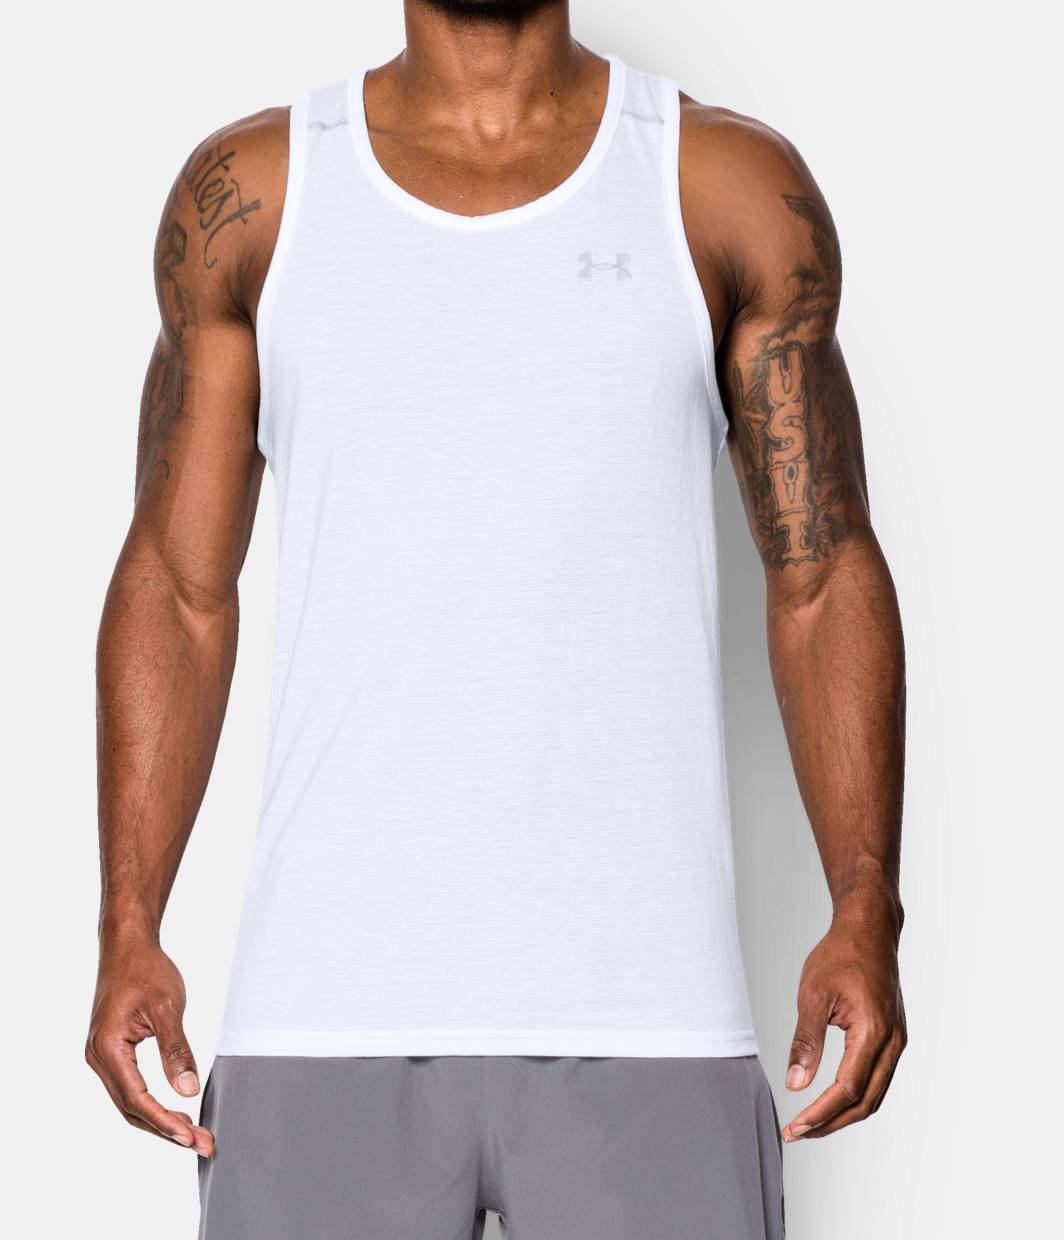 Find Mens White Tank Tops, Womens White Tank Tops and Kids White Tank Tops at Macy's. Macy's Presents: The Edit - A curated mix of fashion and inspiration Check It Out Free Shipping with $75 purchase + Free Store Pickup.